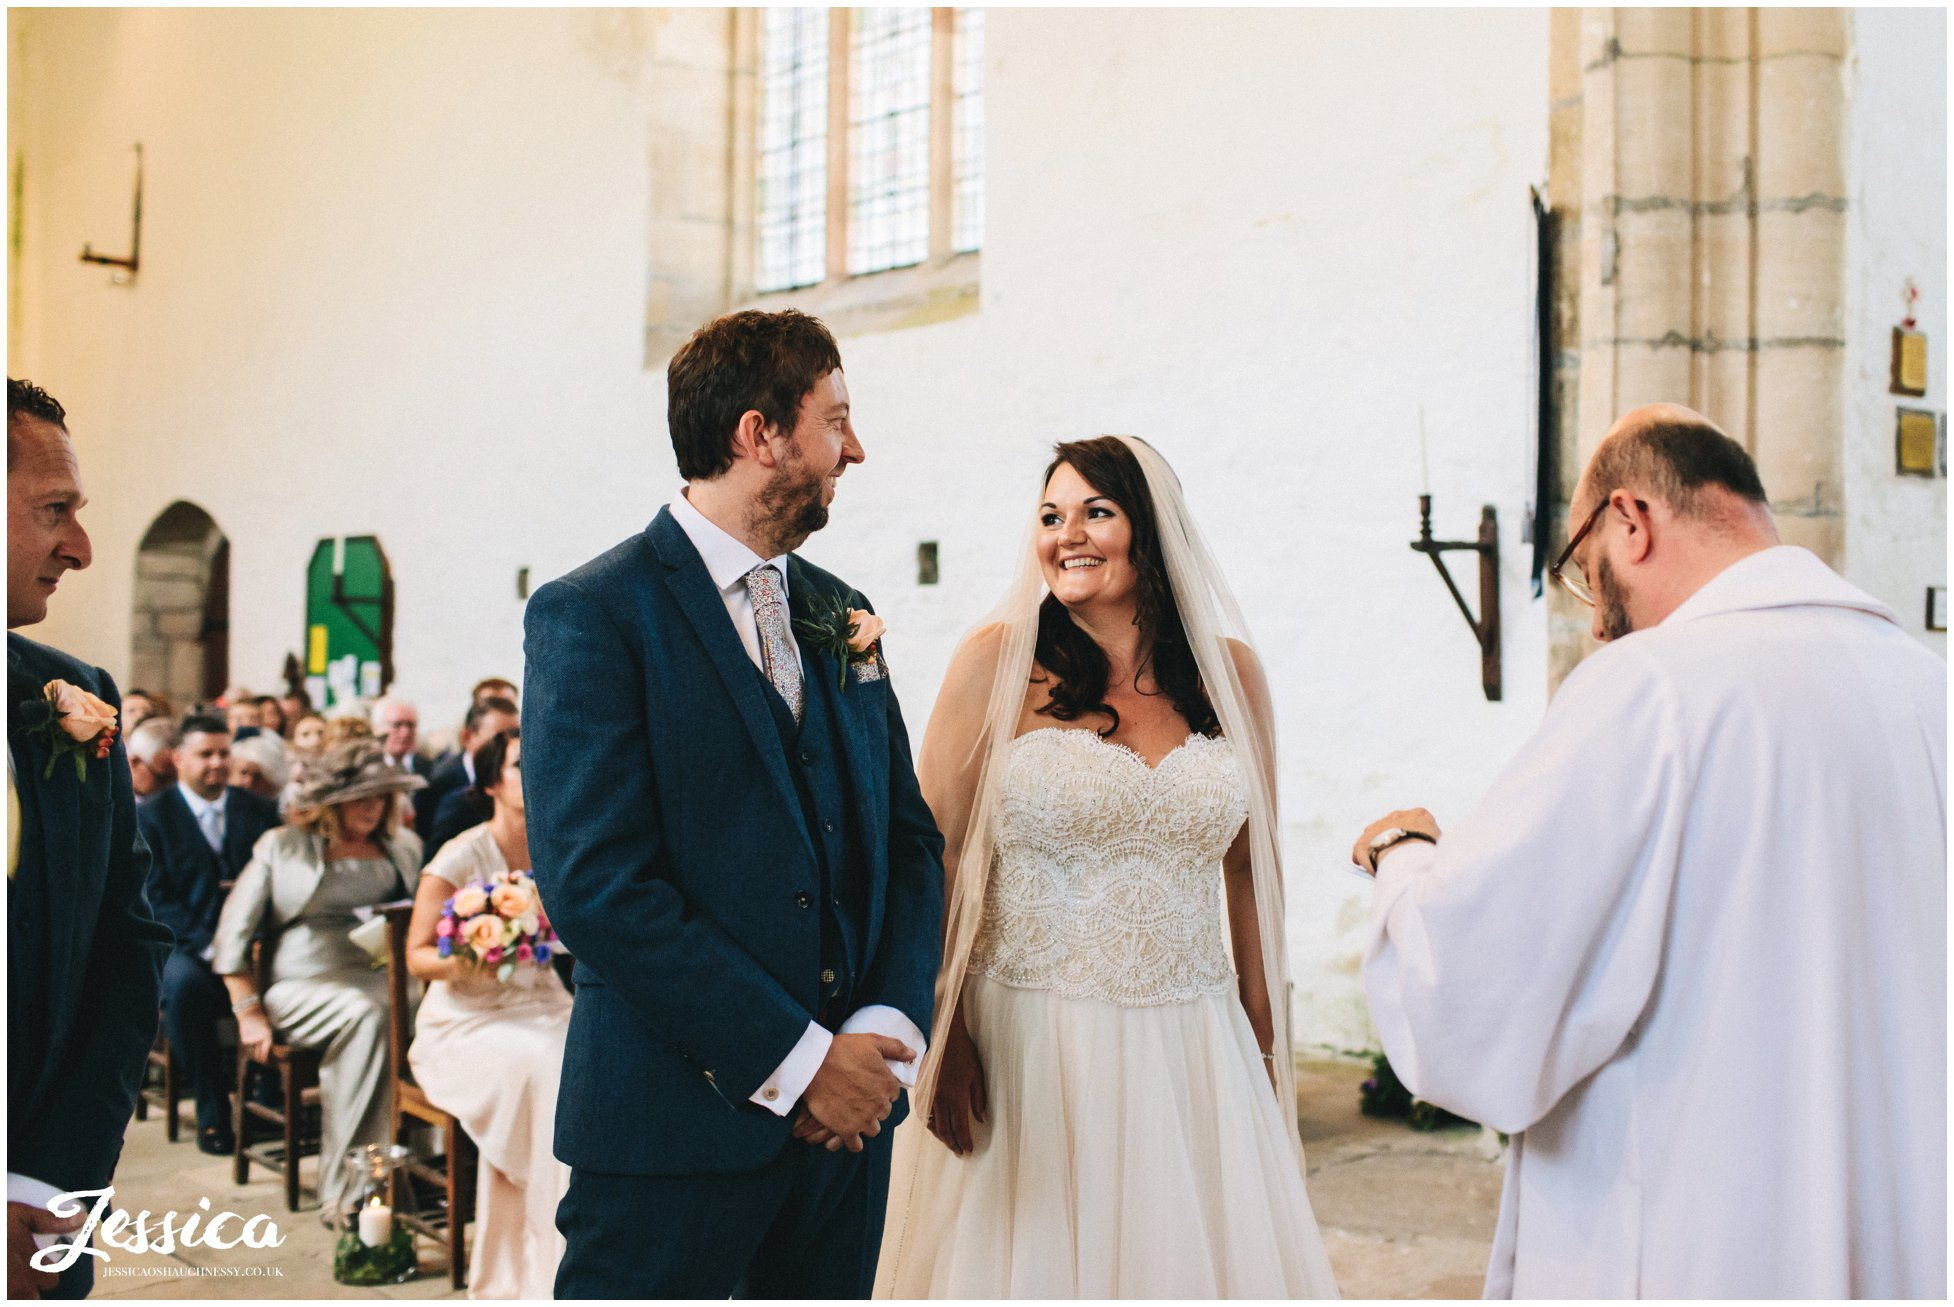 the bride smiles at her husband to be during the service